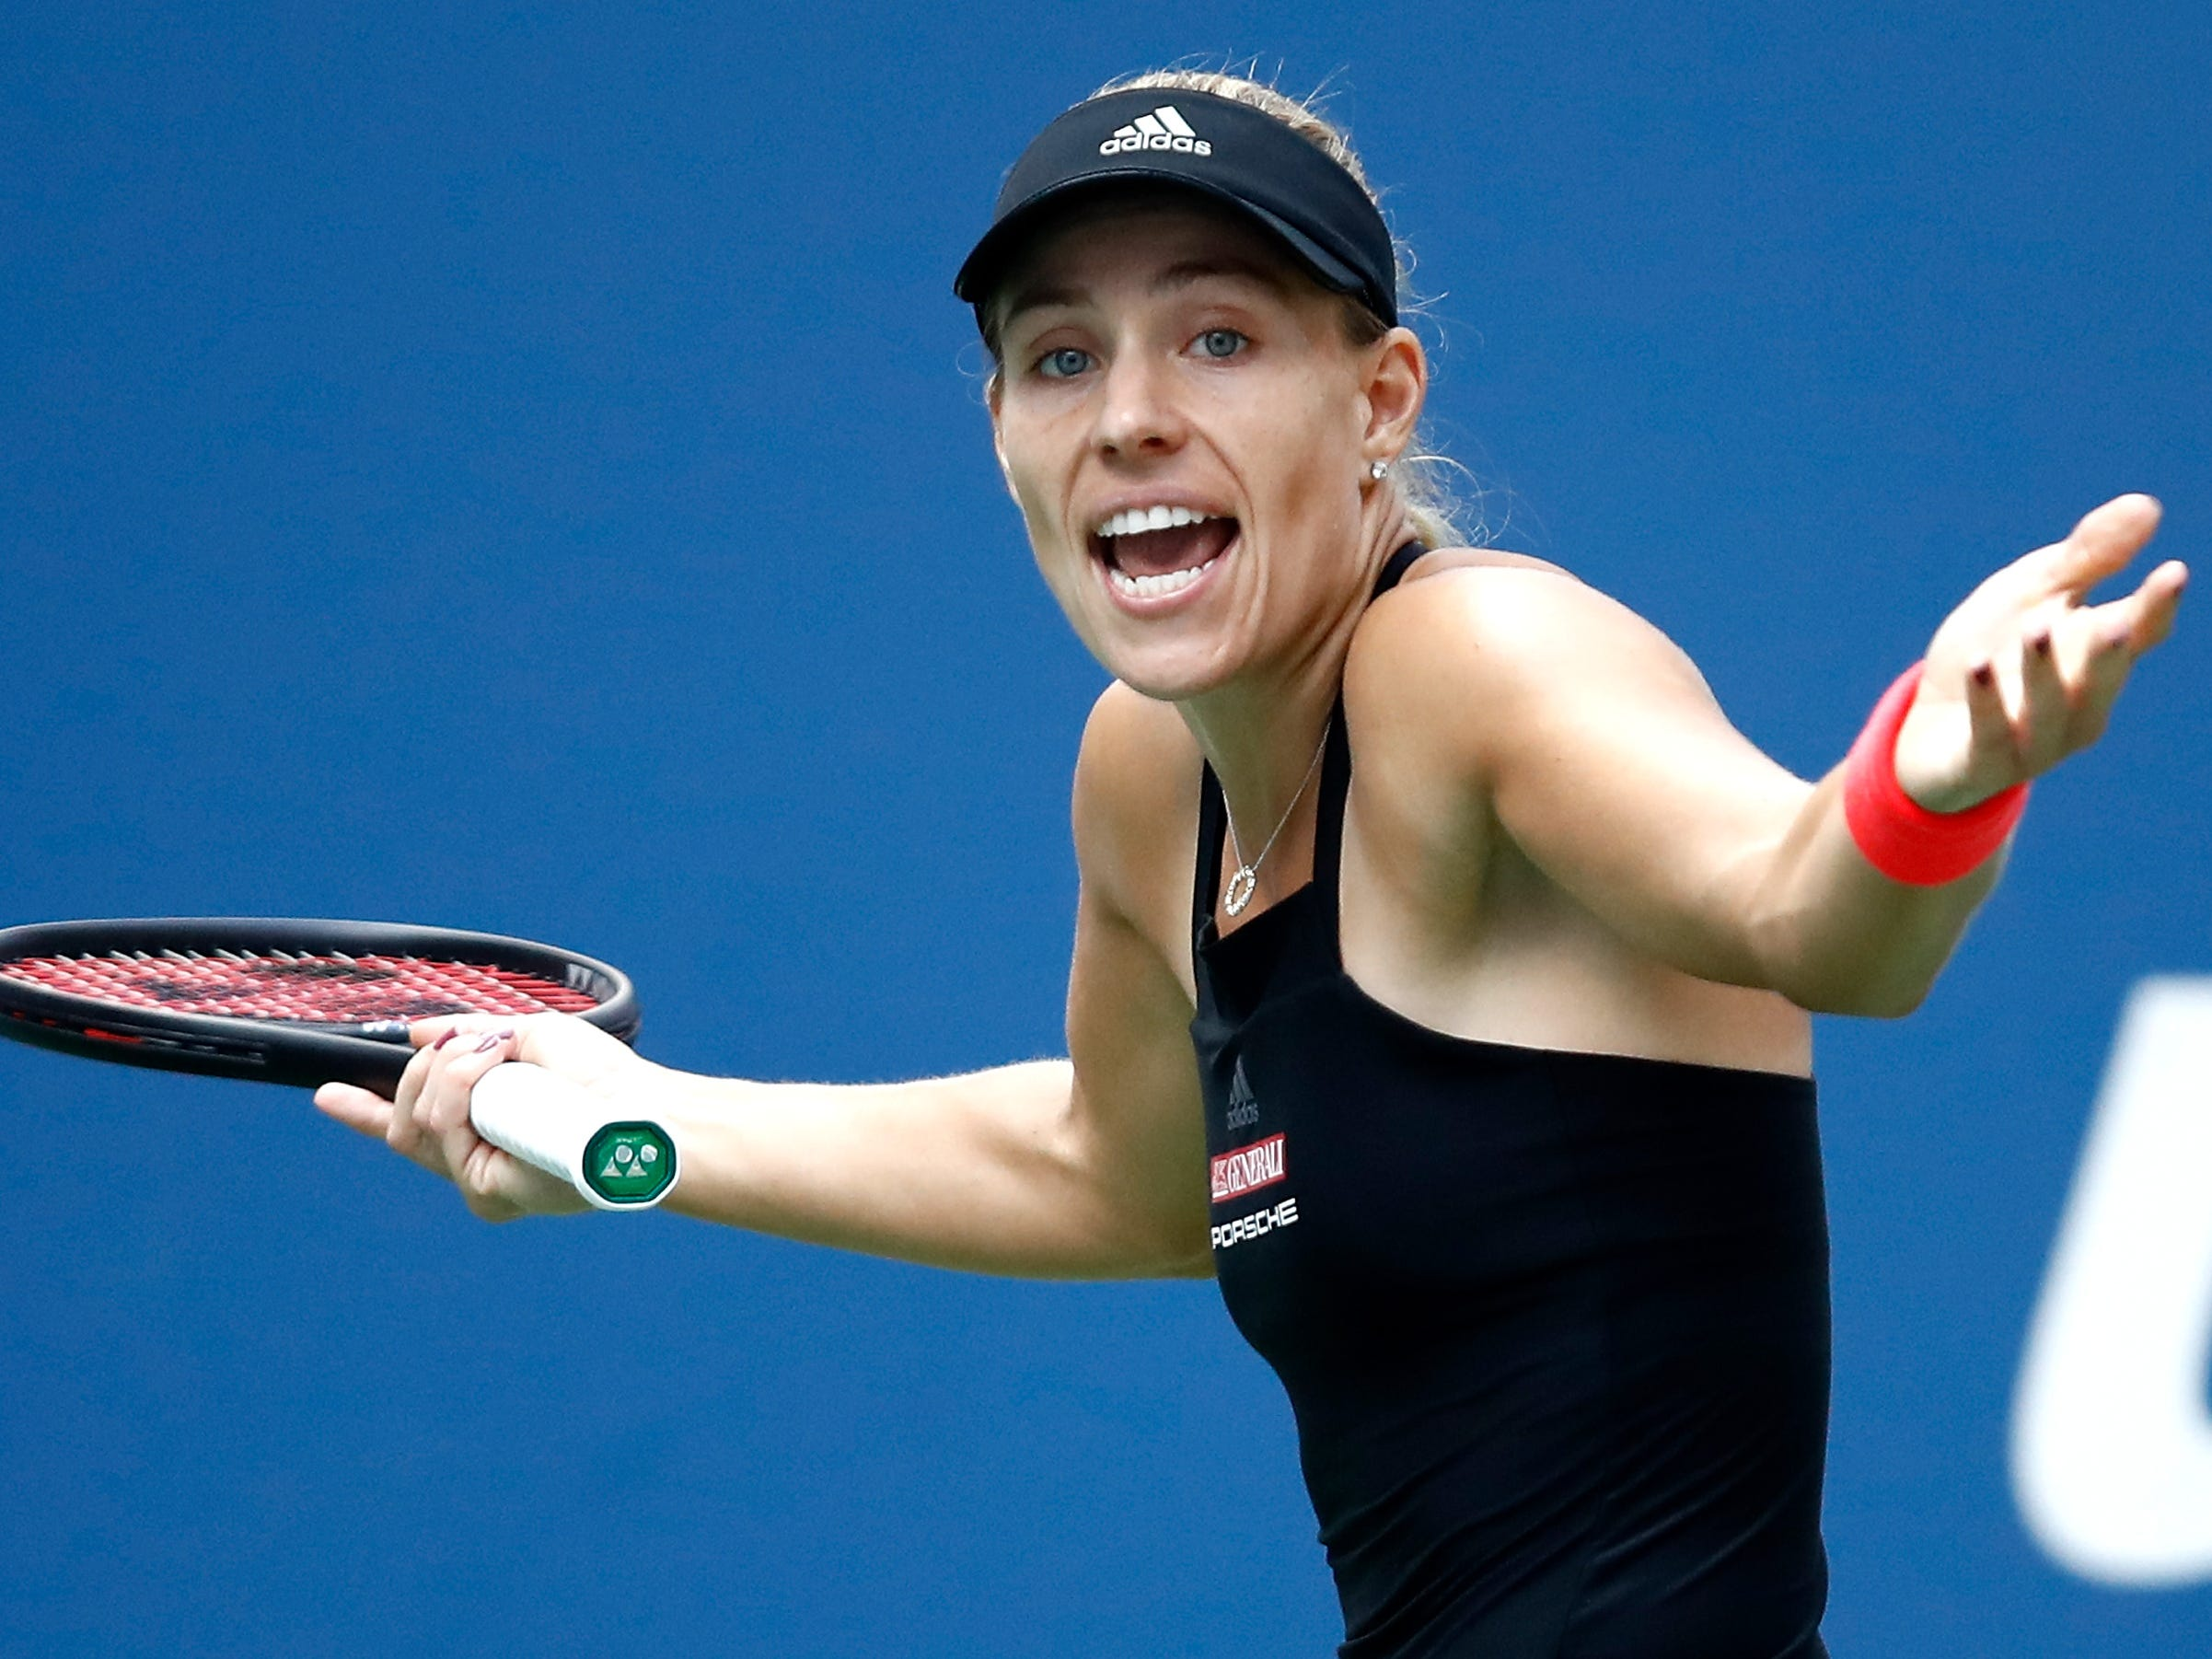 Angelique Kerber was upset by Dominika Cibulkova in the third round.